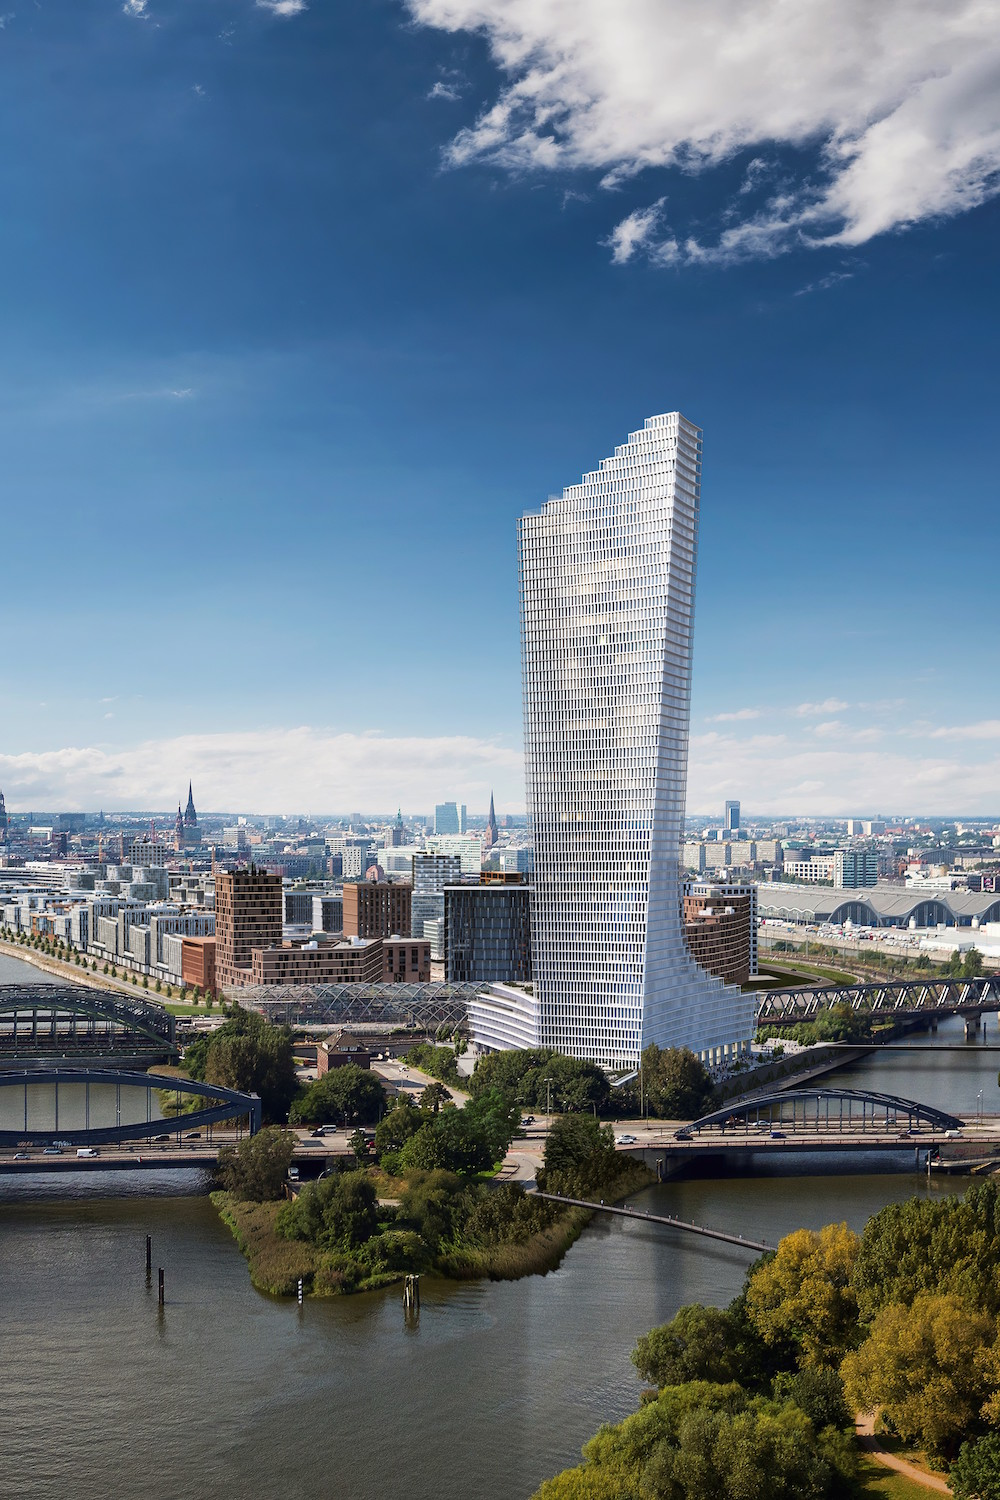 Image caption: Exterior shot of the Elbtower, designed by David Chipperfield Architects | Image credit. Nobu Hospitality